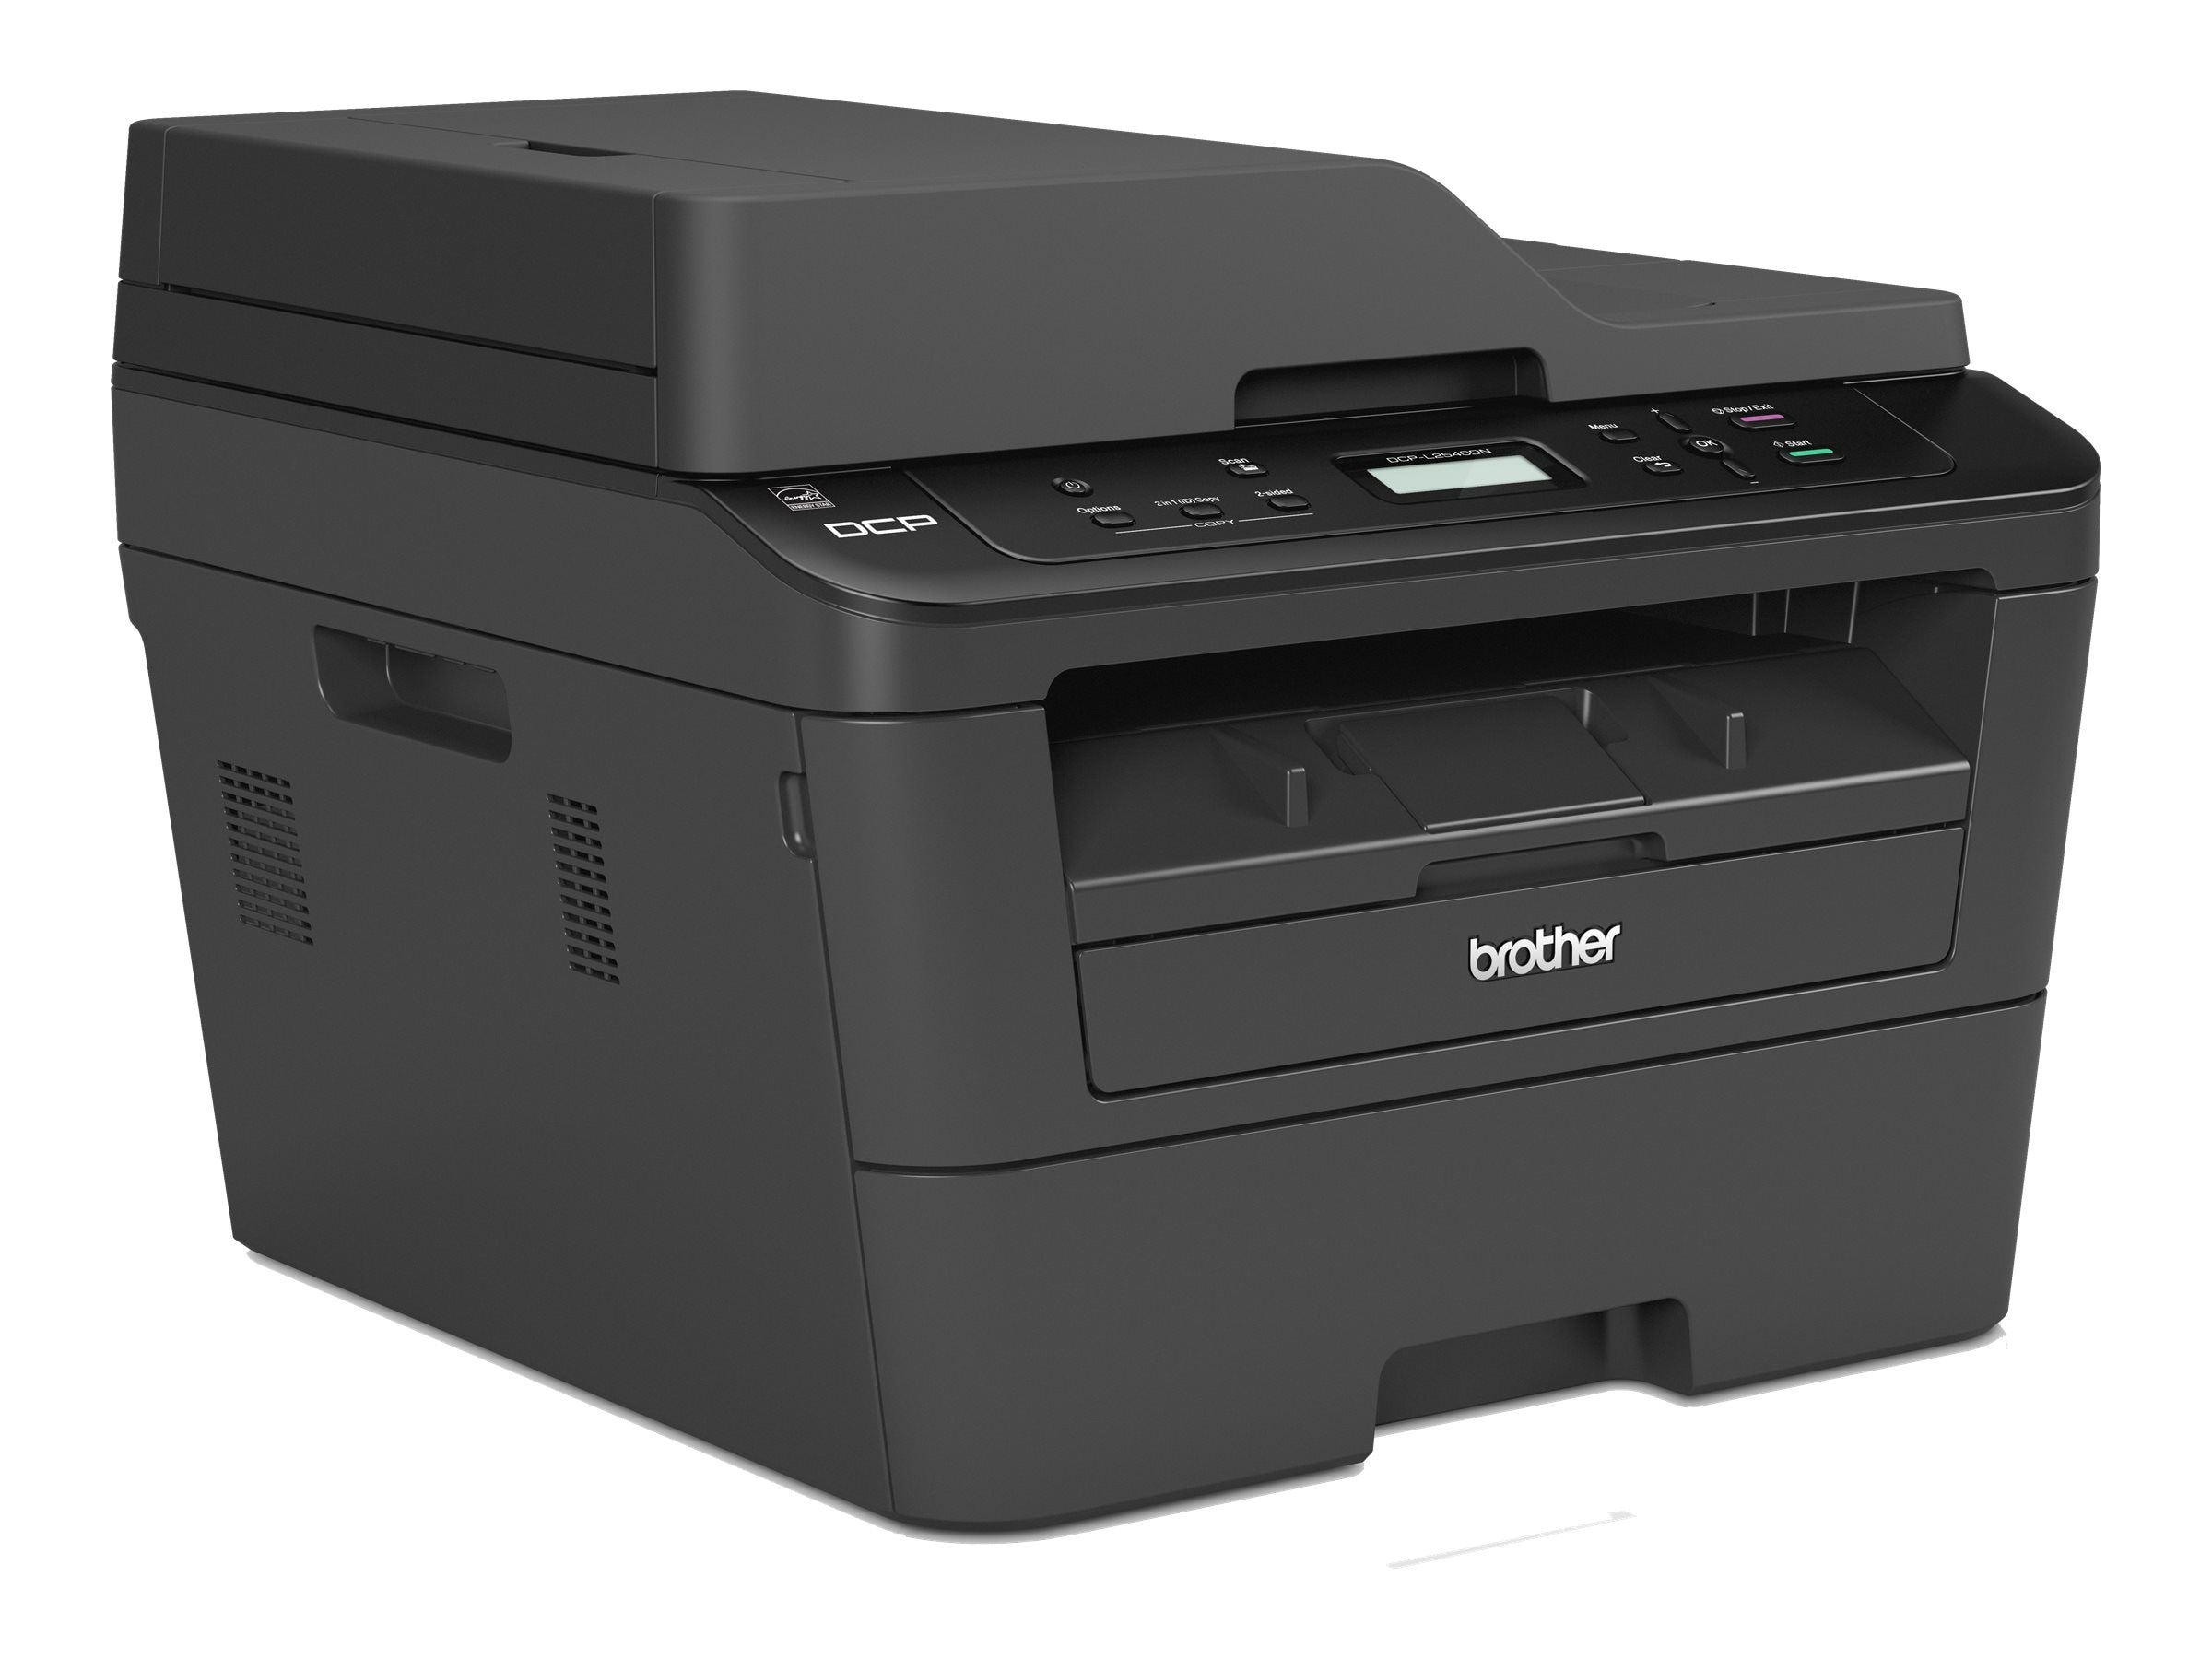 Brother DCPL2540DW Image 3